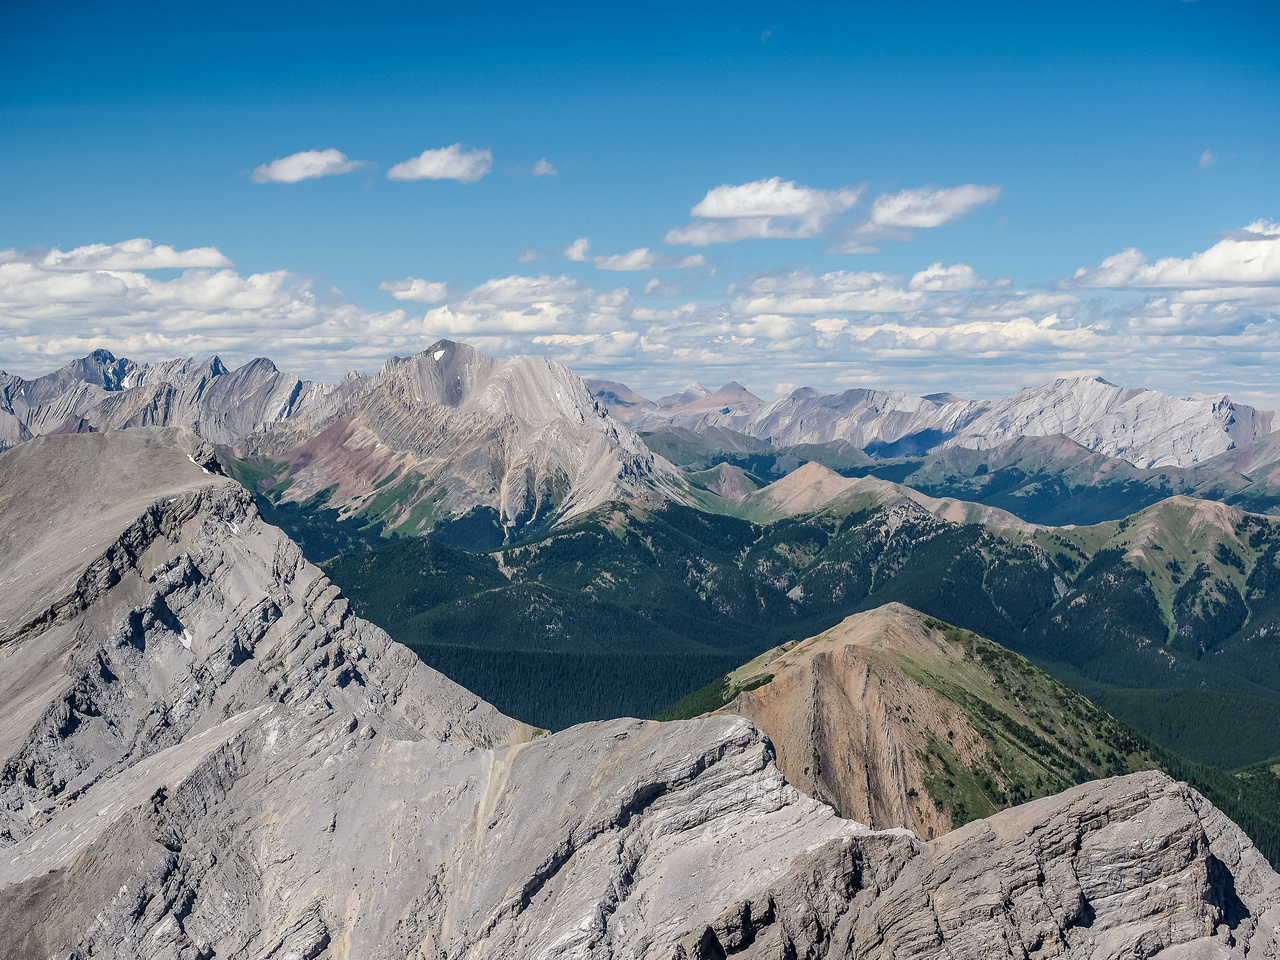 Looking over Horned Mountain and past Mount Bishop towards Mist Mountain.